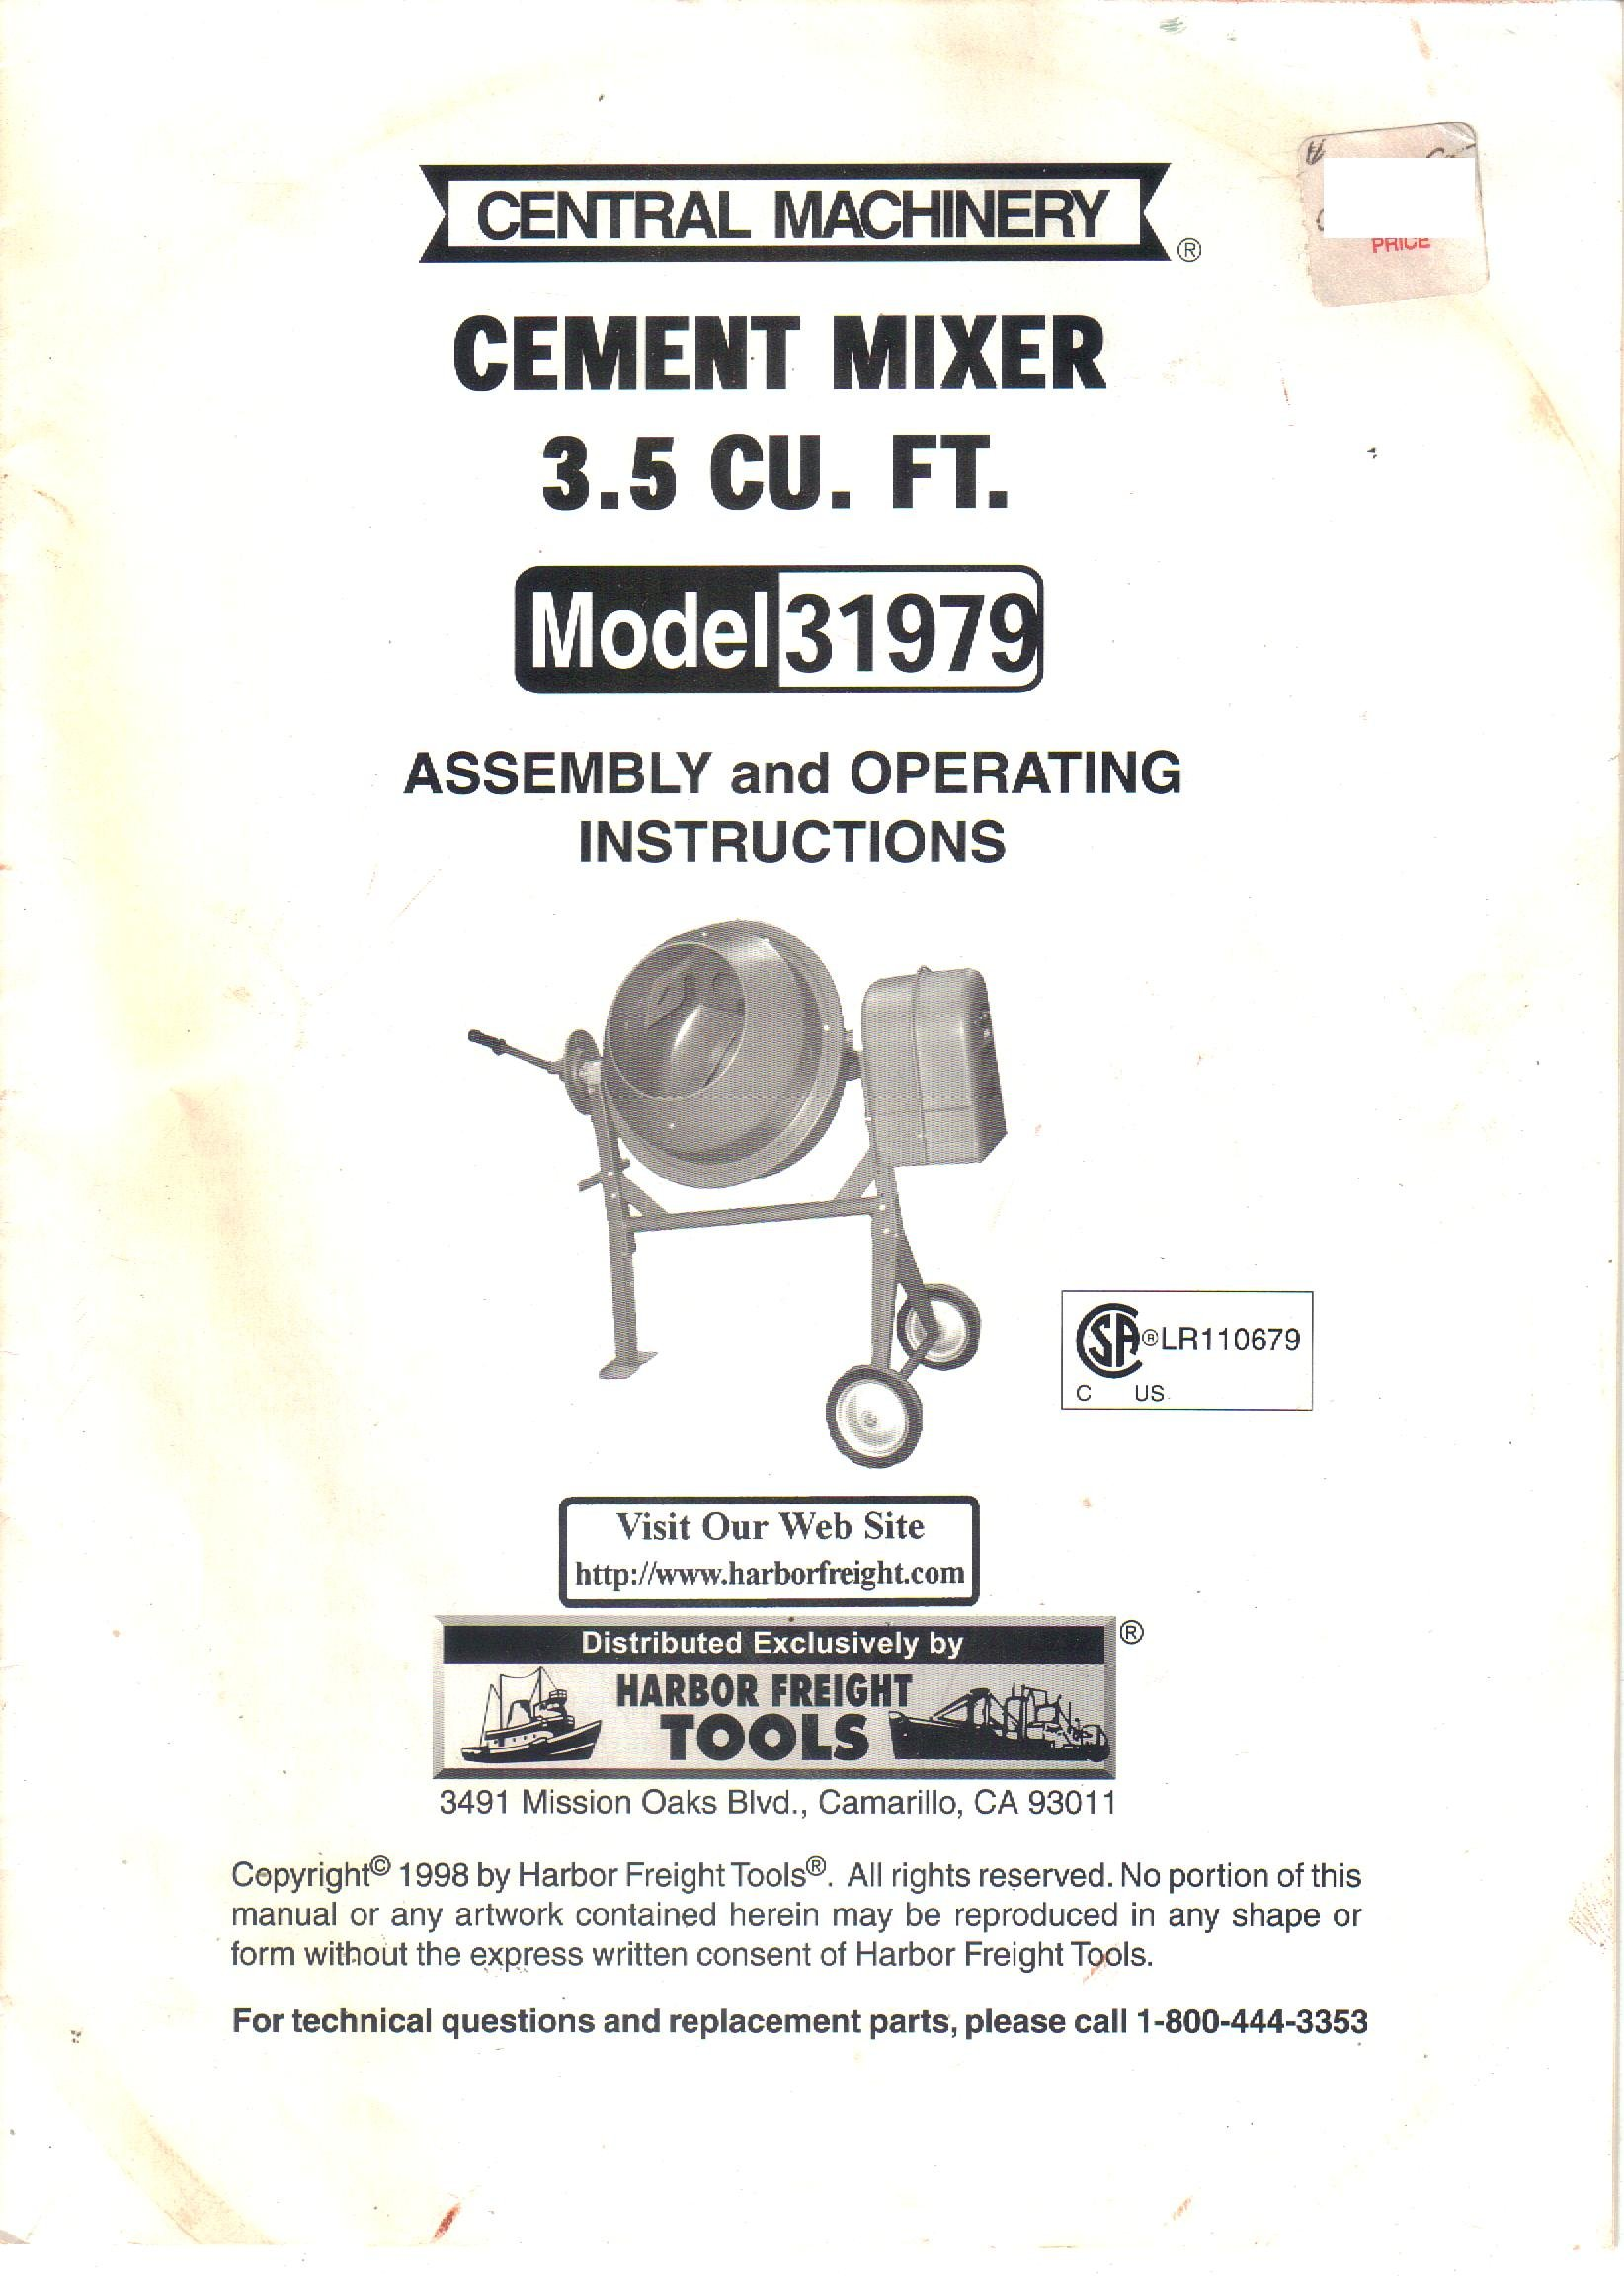 harbor freight tools central machinery cement mixer model 31979